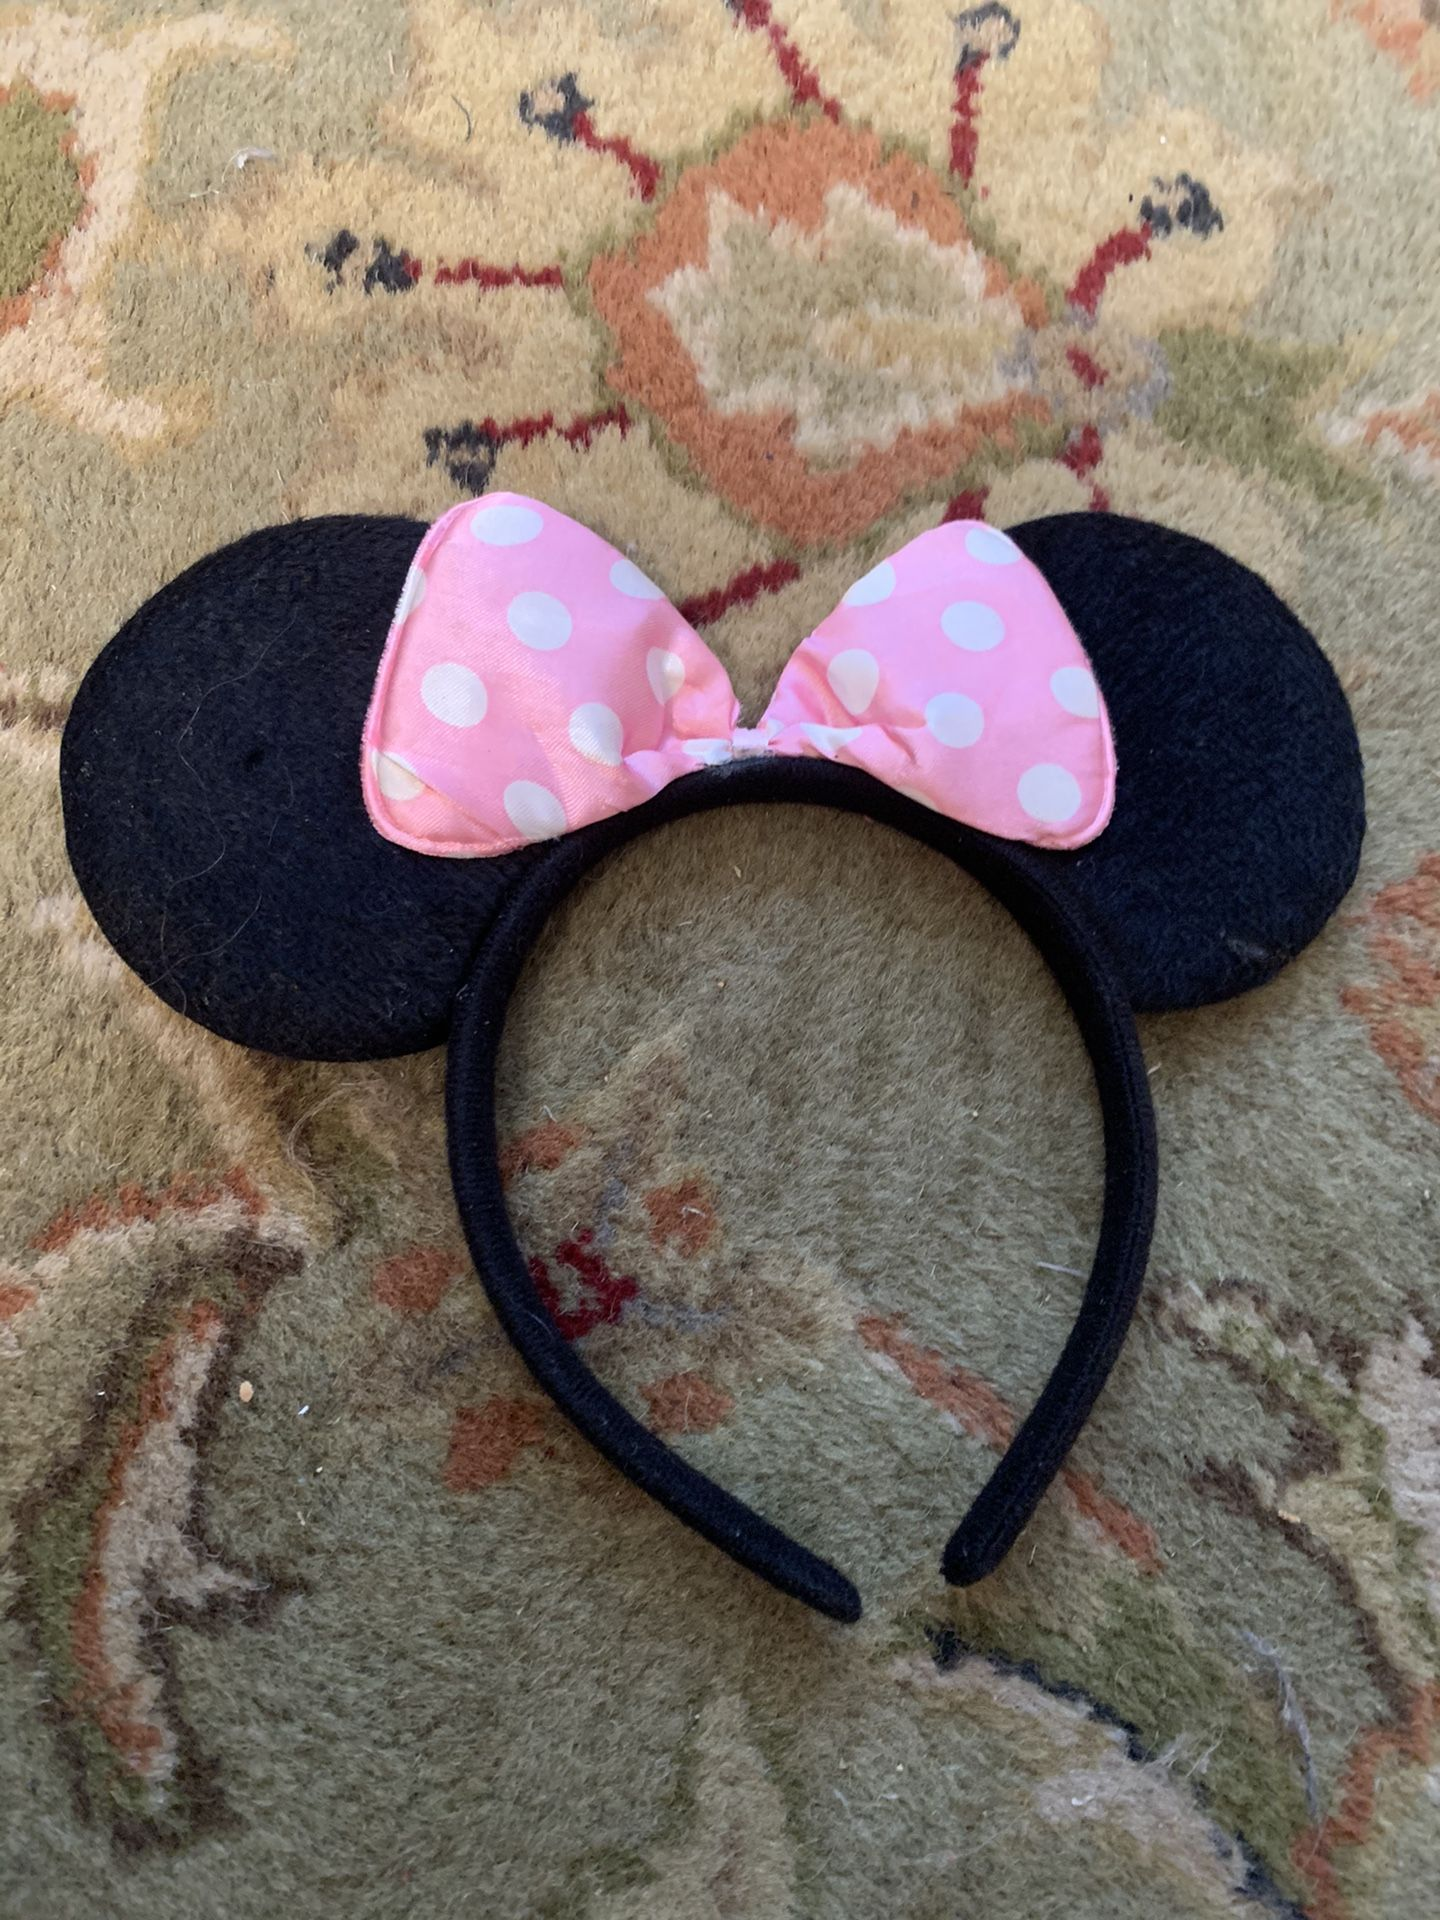 Classic child's Minnie Mouse Ears